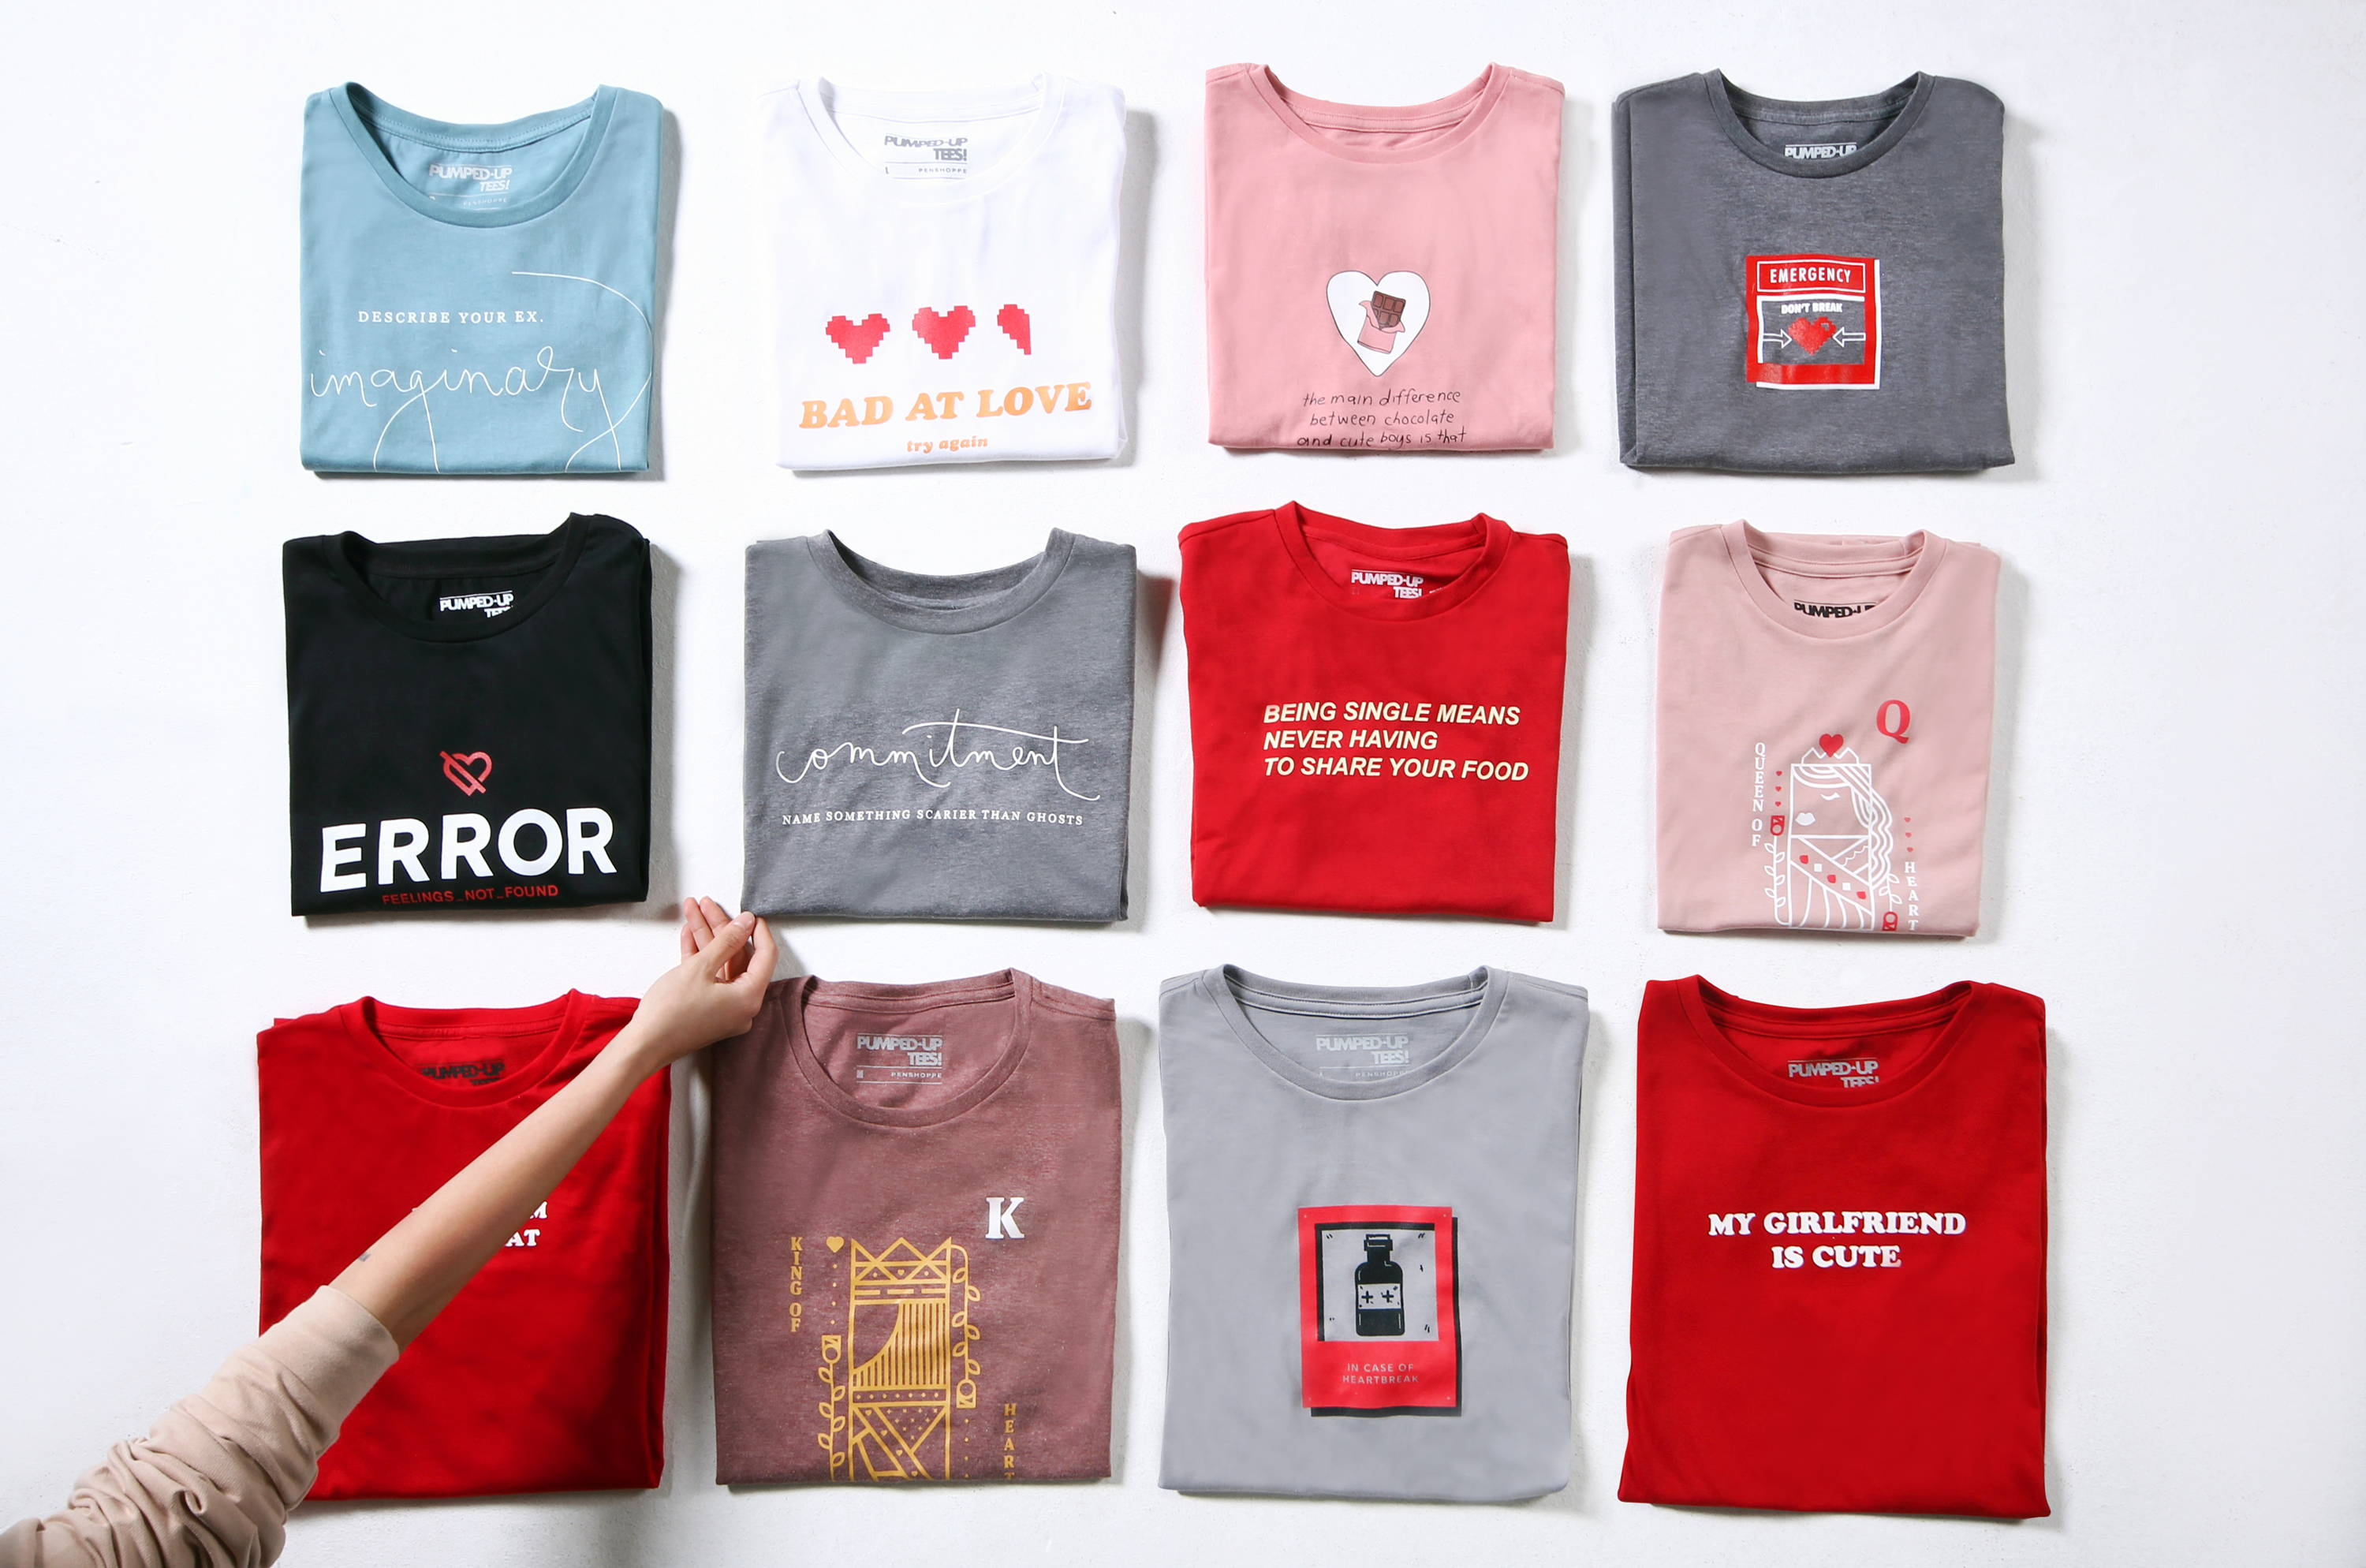 Valentines Day Is Almost Here And Weve Got Some Tees To Help You Celebrate The Occasion Whether Youre Deeply In Love With Boo Single Af